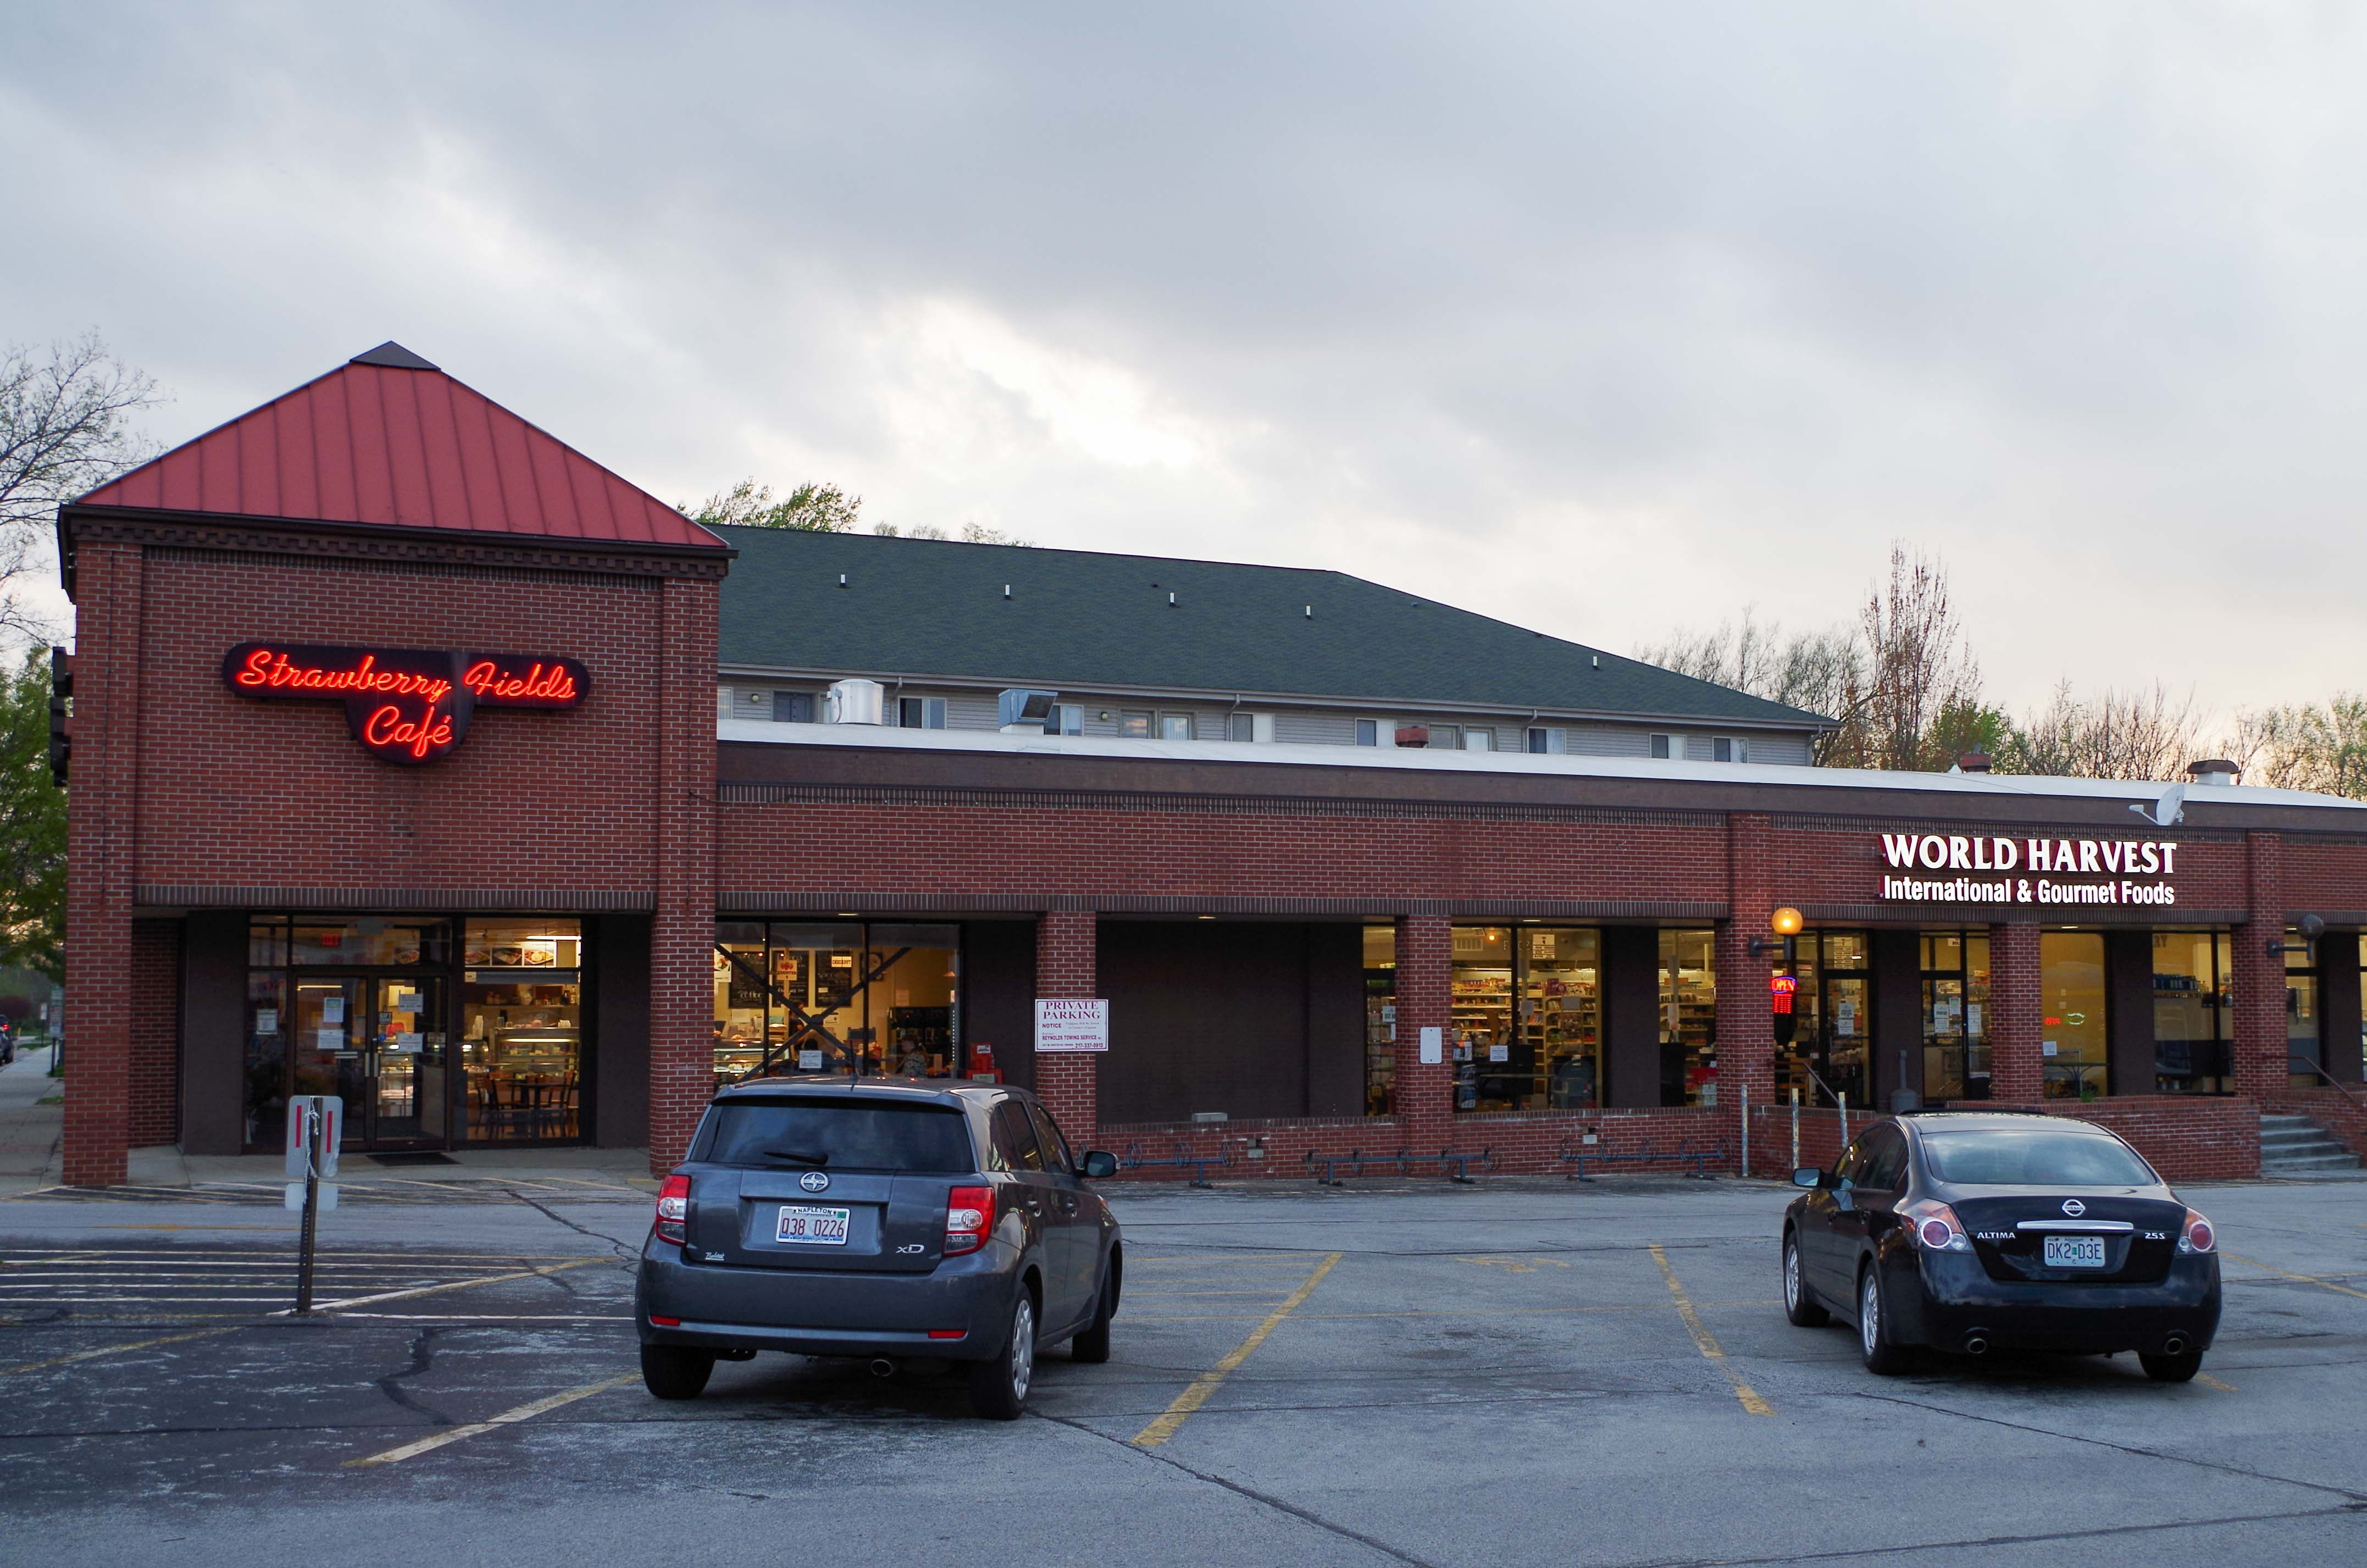 Strawberry Fields Cafe and World Market International & Gourmet are now located in the same building at 306 W. Springfield Ave. in Urbana, making it easier for locals to buy their food.